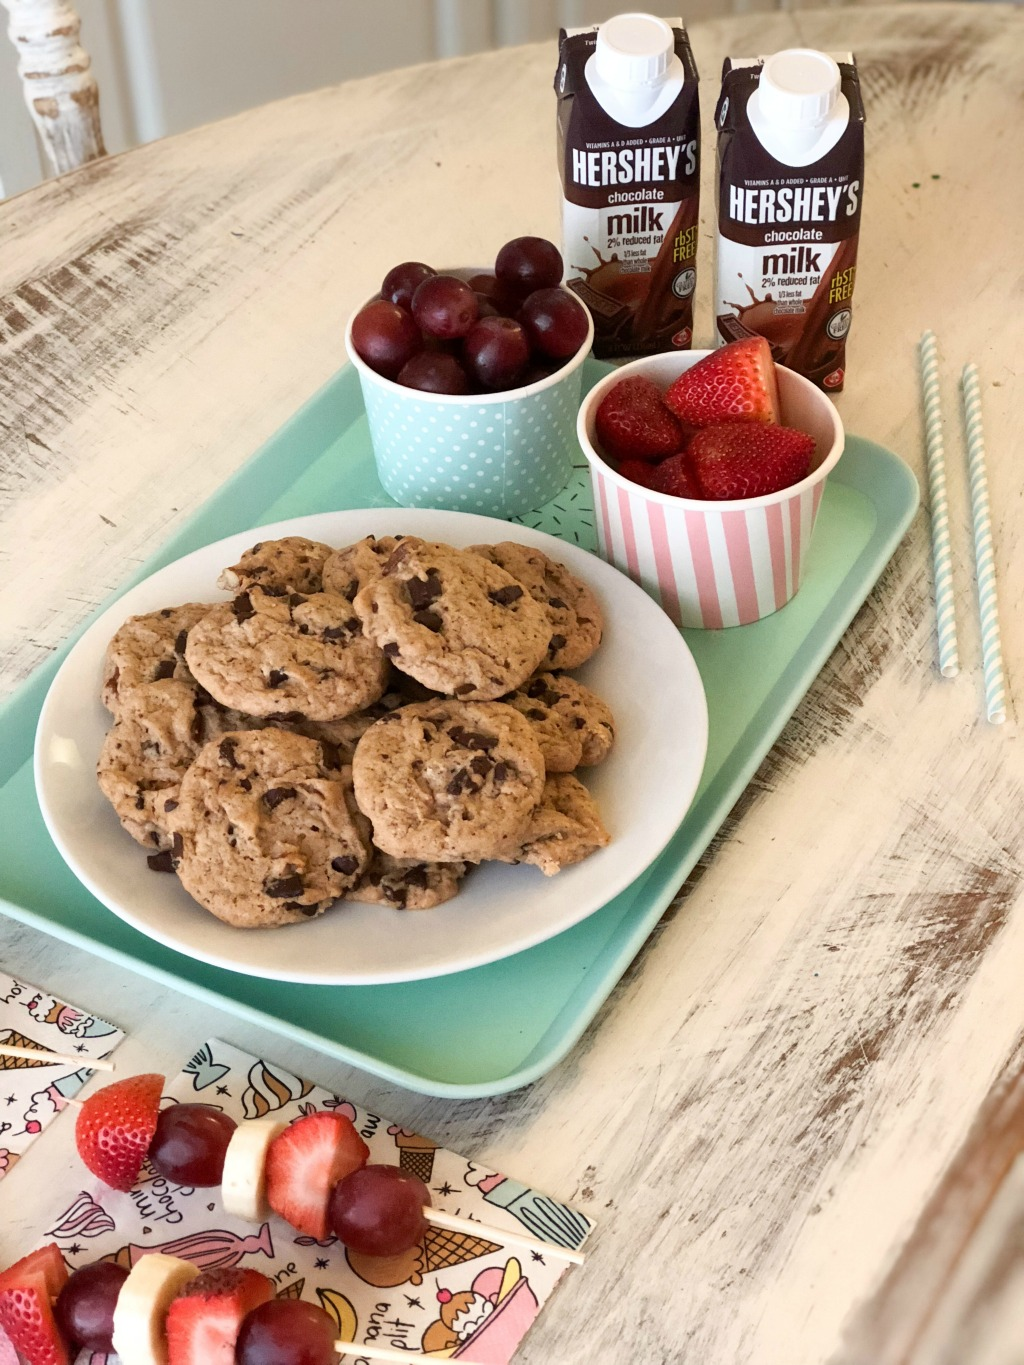 cookies, fruit and hershey's chocolate milk on a white table